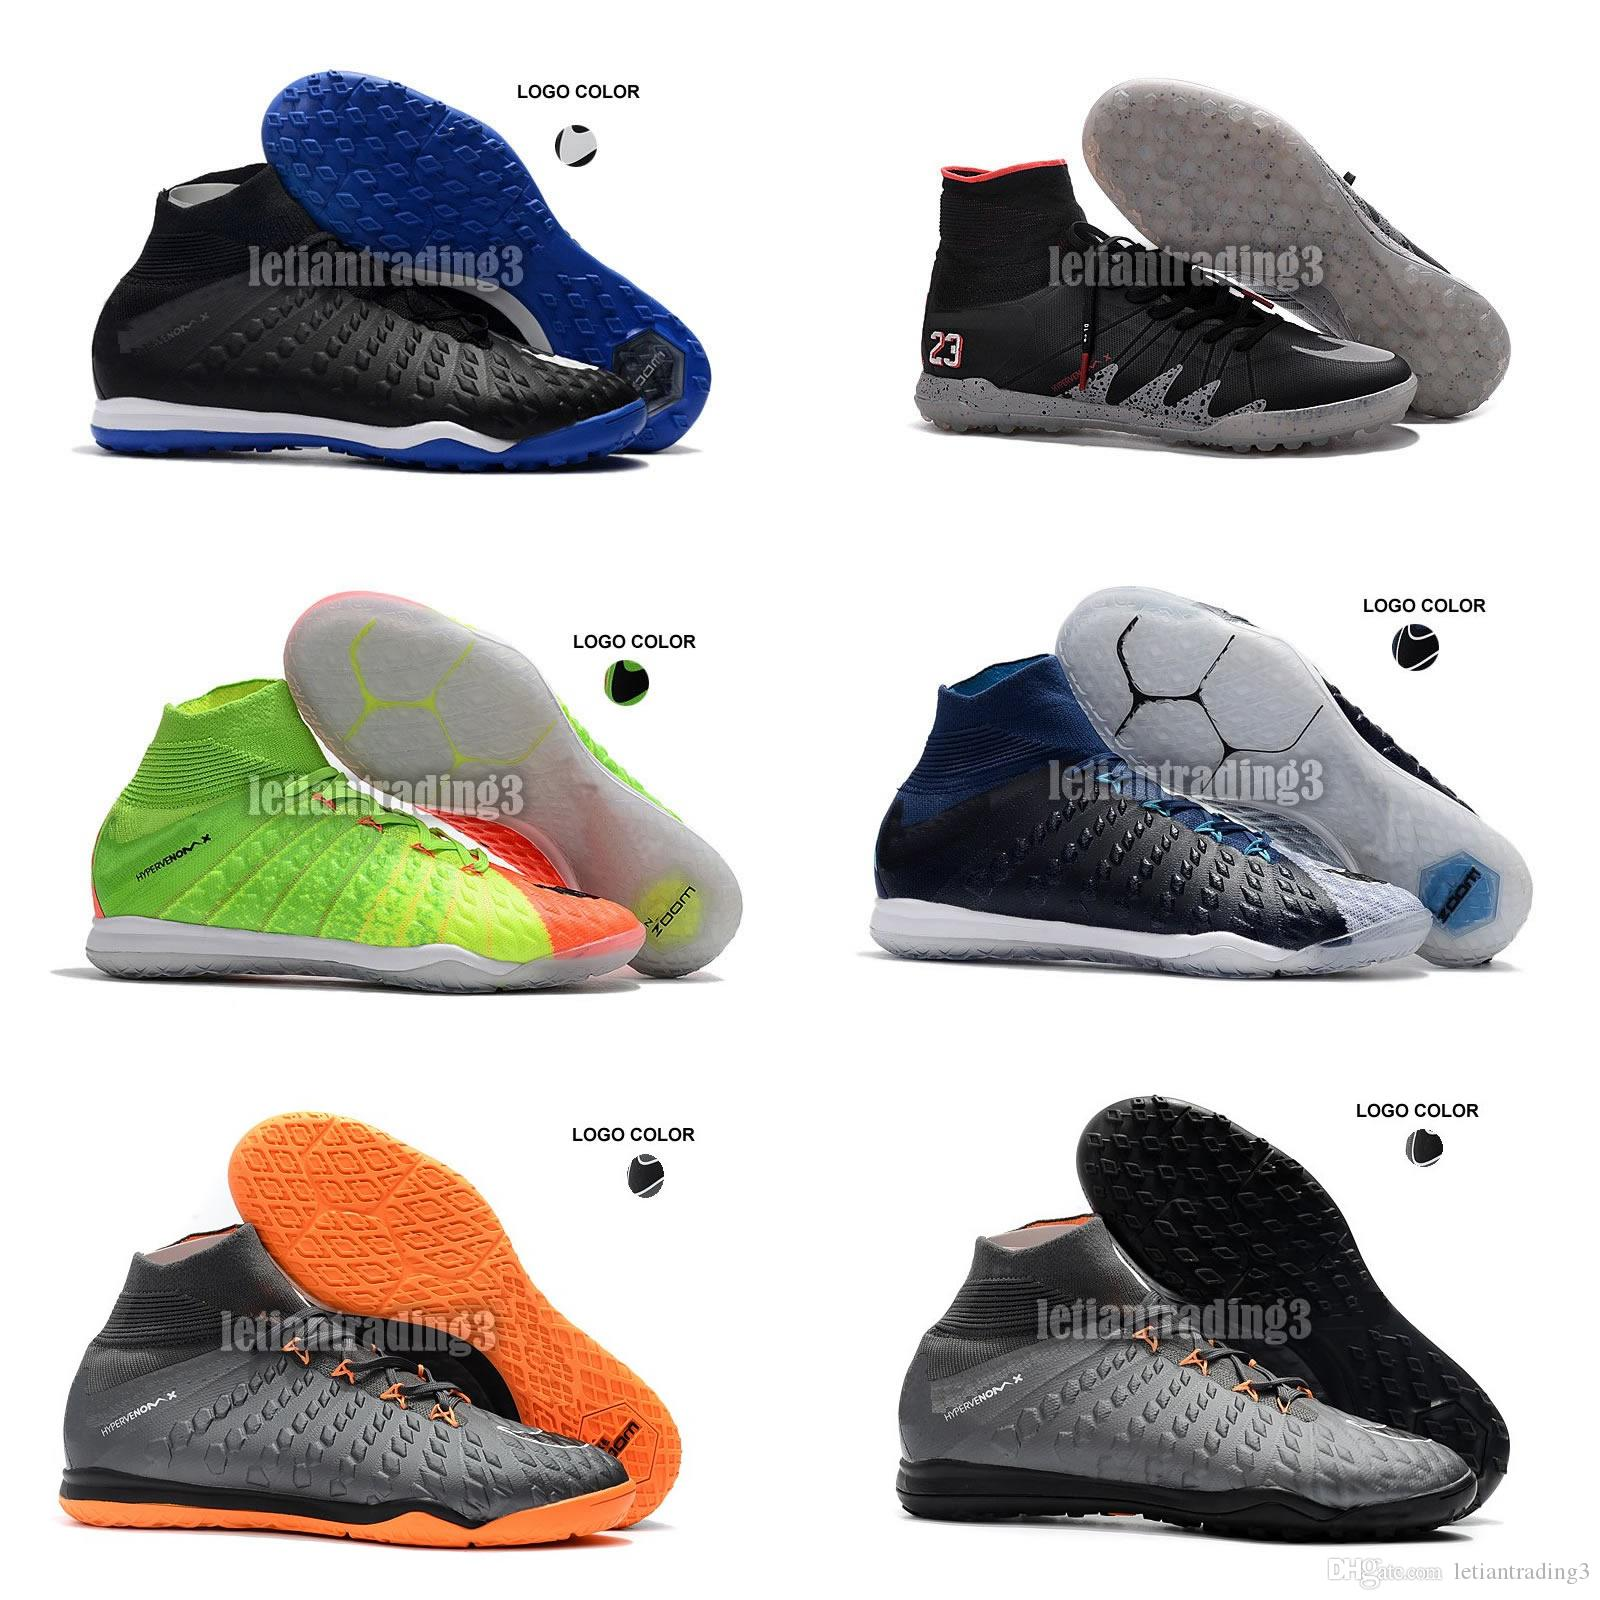 bff0407e70d9 2018 Hypervenom Phantom II TF 3D Indoor Soccer Cleats Trainers Football  Boost TF IC Mens Football Boots Soccer Shoes Online Formal Shoes Shoe Shops  From ...